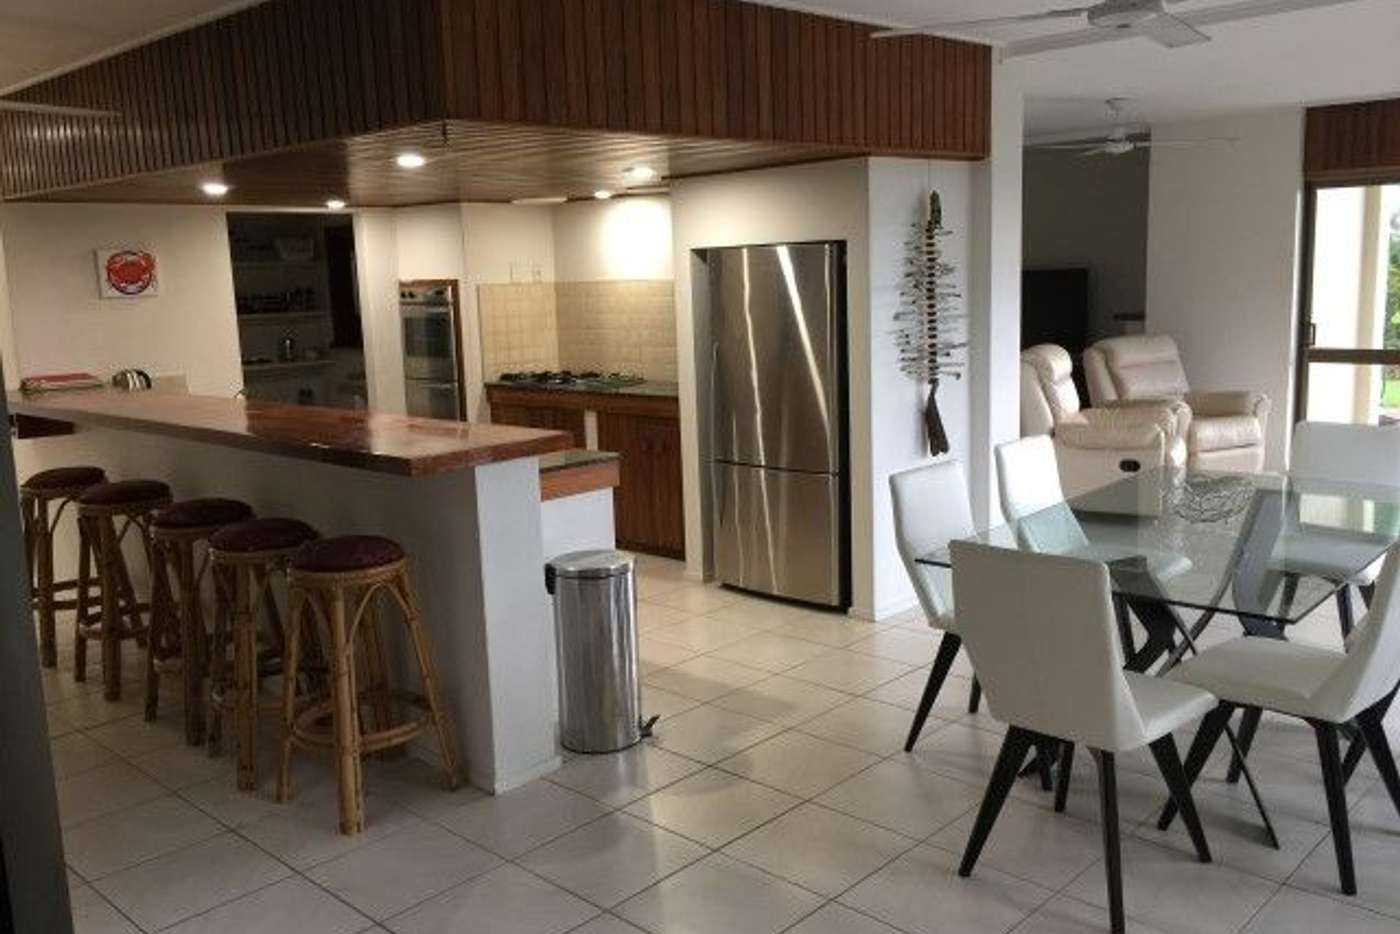 Main view of Homely house listing, 6 Reid Road, Wongaling Beach QLD 4852